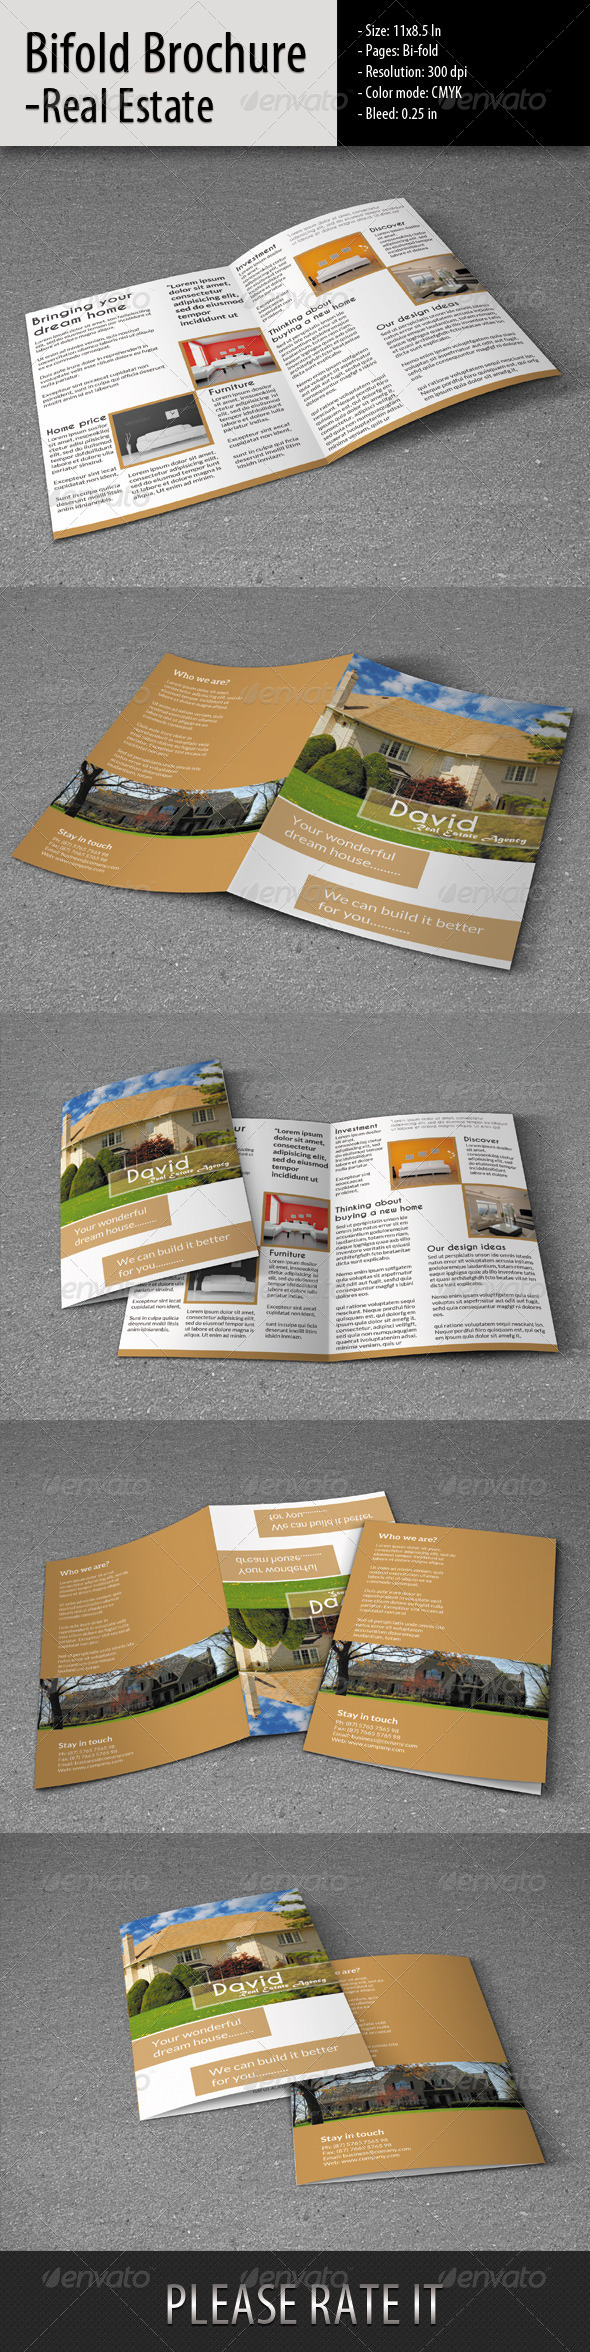 GraphicRiver Bifold Brochure for Real Estate 6314045